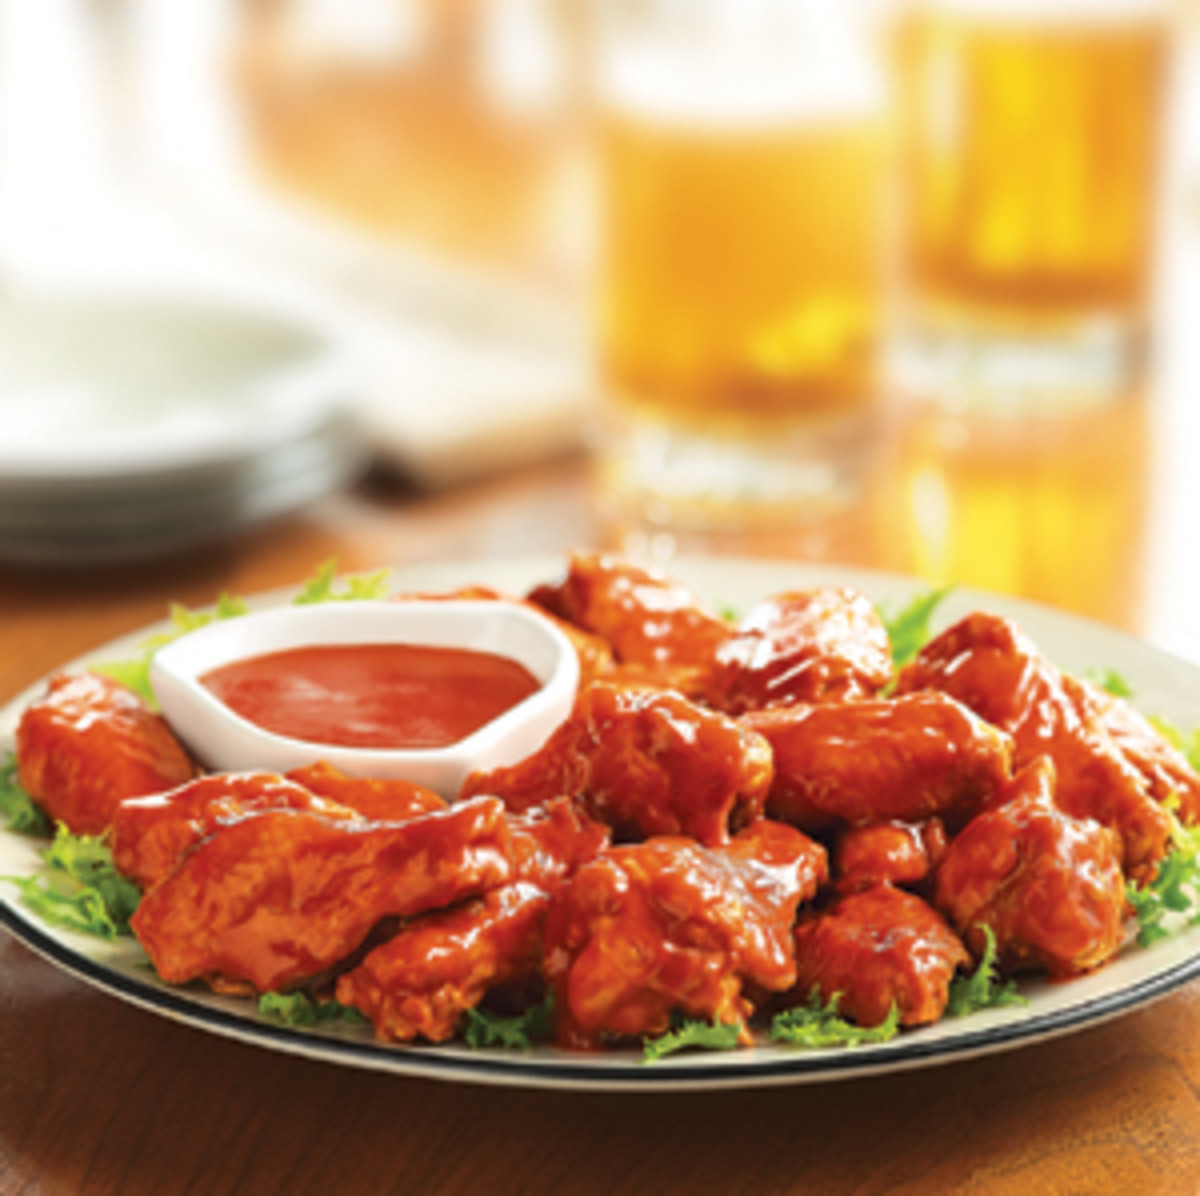 franks' red hot buffalo wings